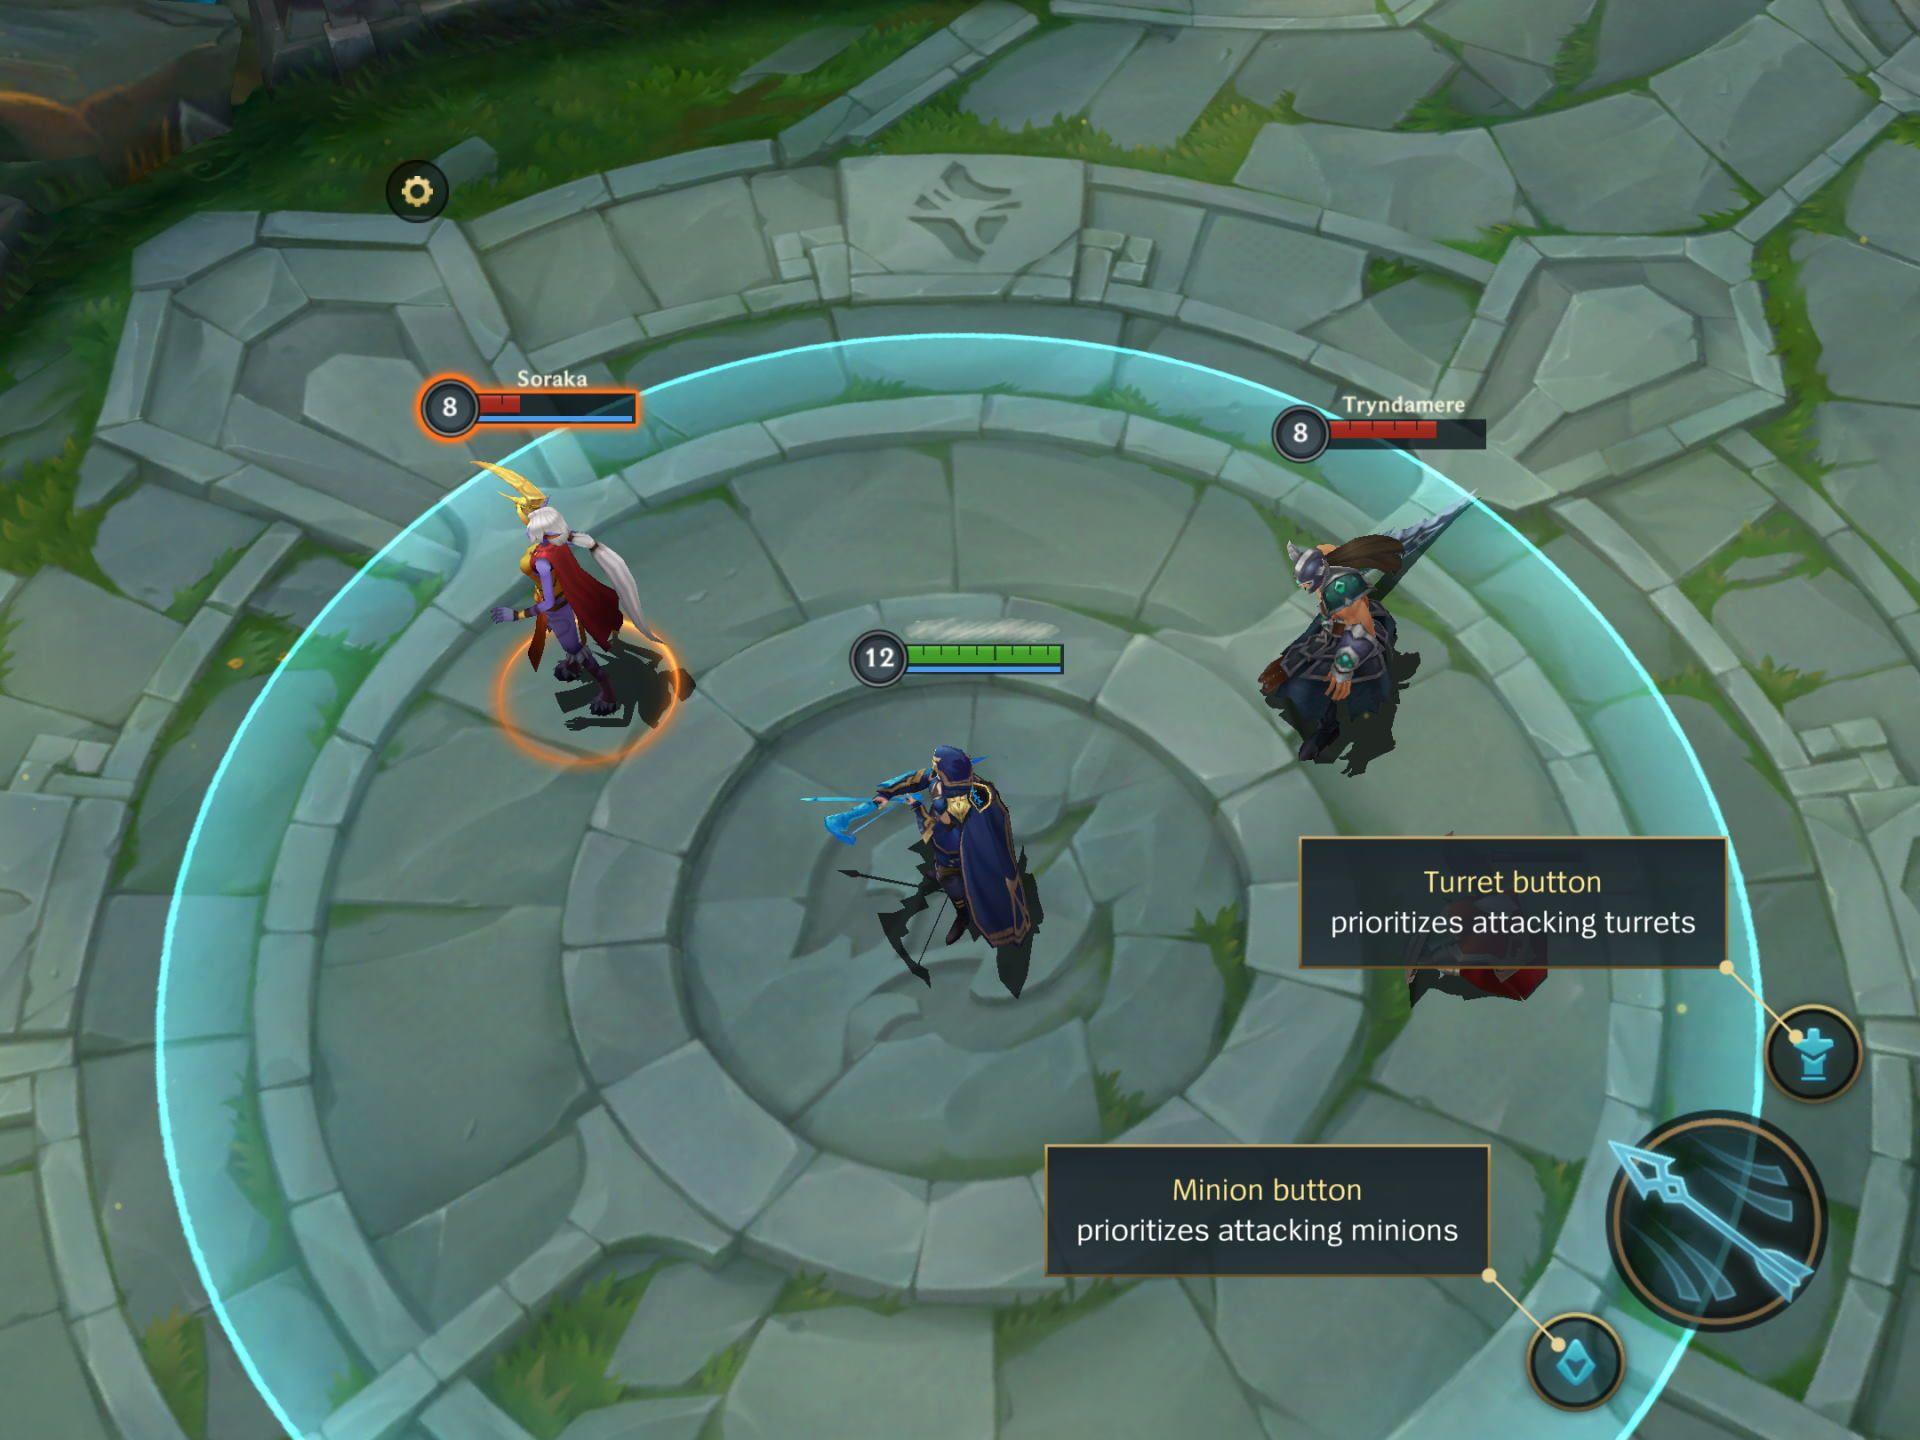 Minion and Turret Button in the tutorial mode in League of Legends Wild Rift